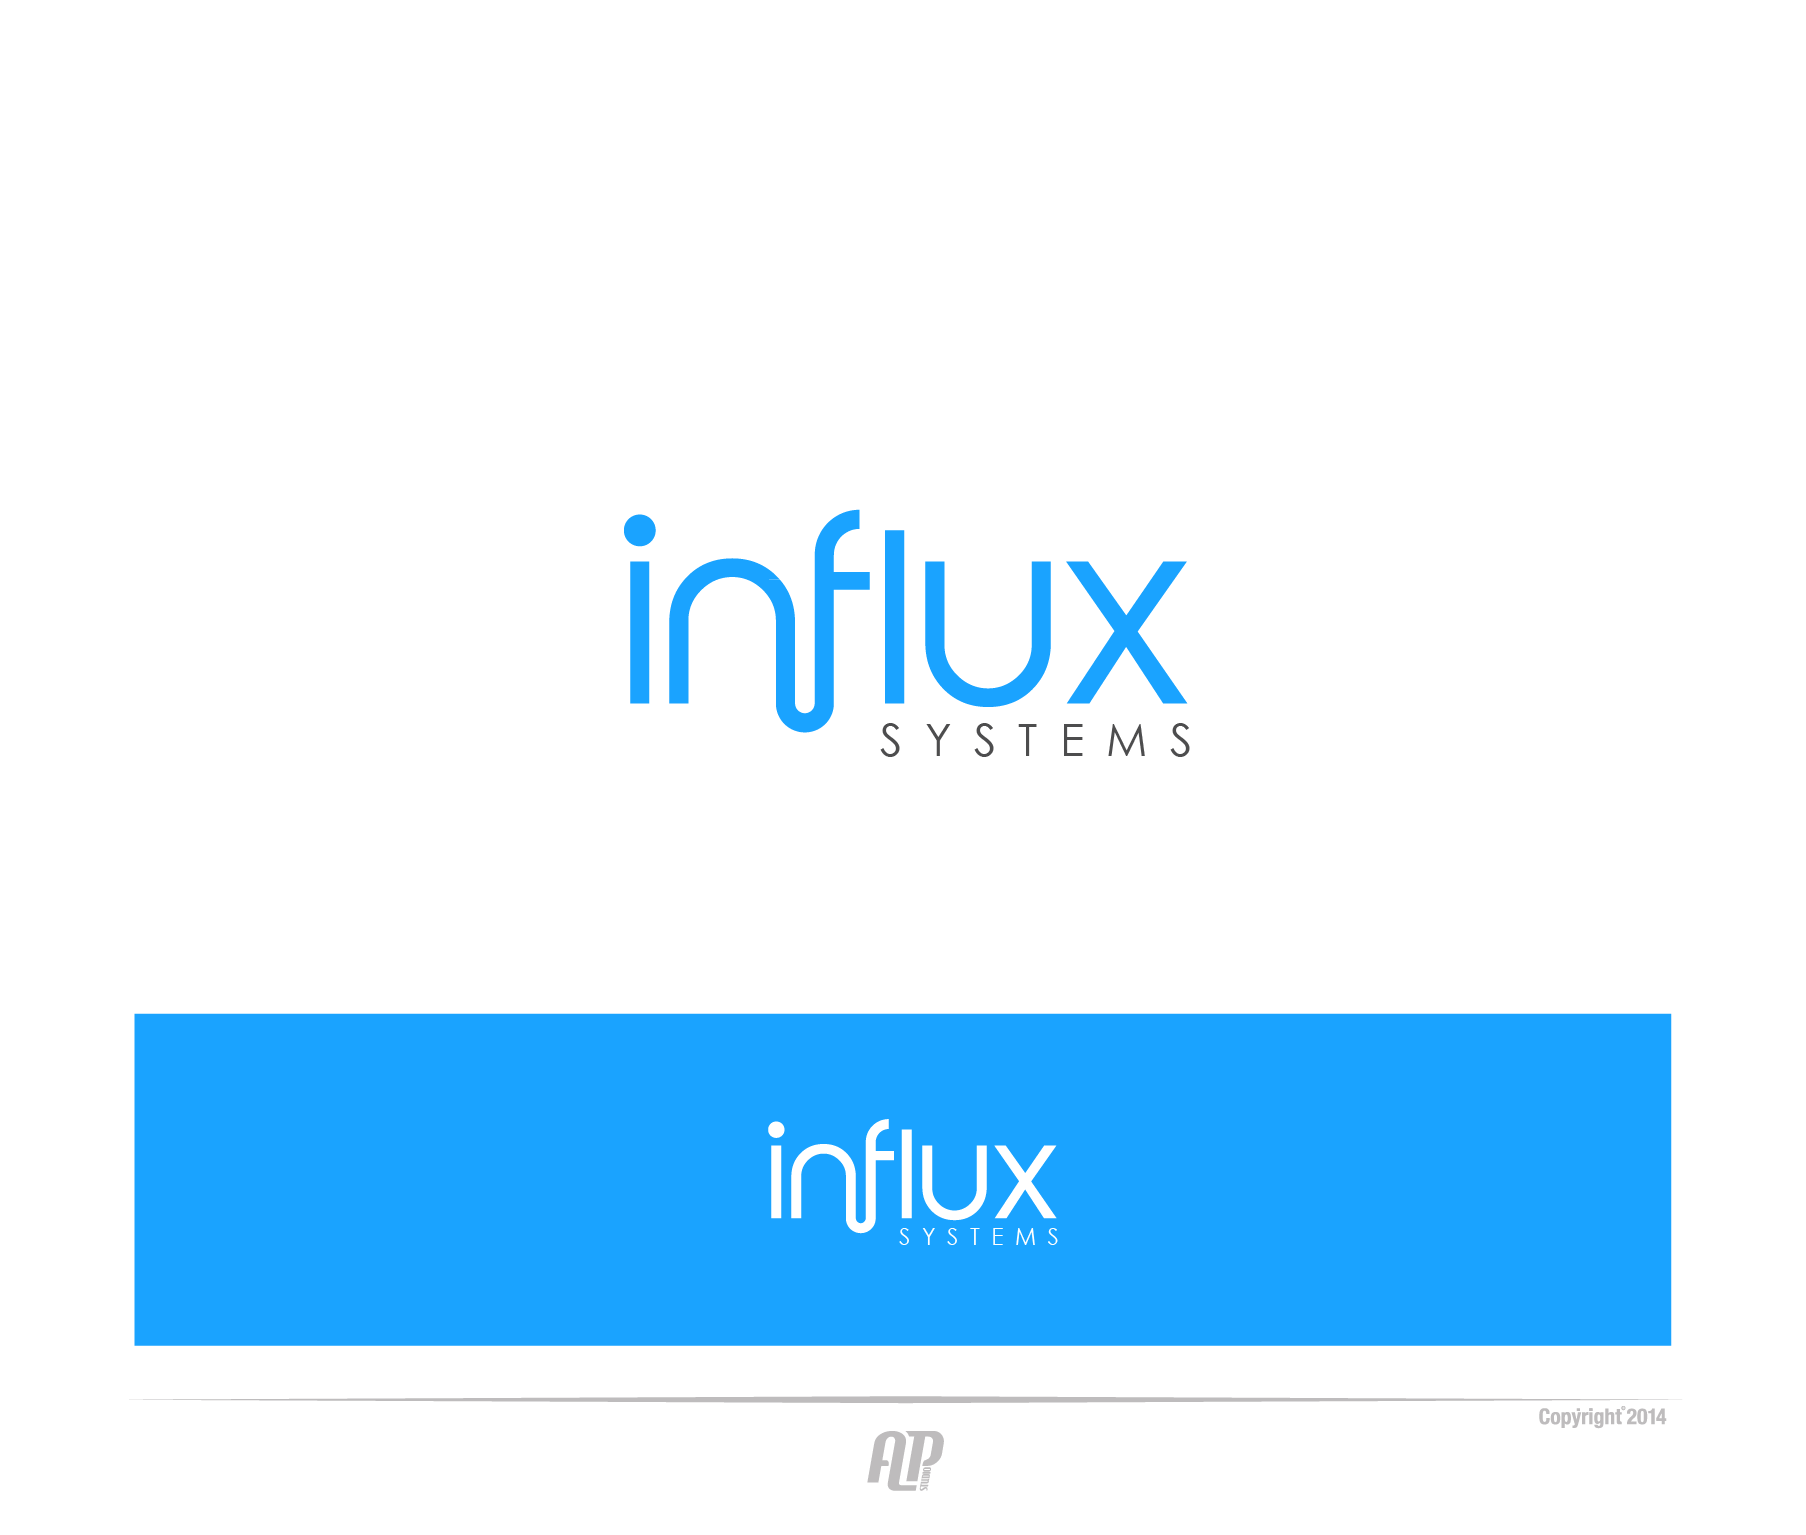 Create a new logo design for an upcoming IT company